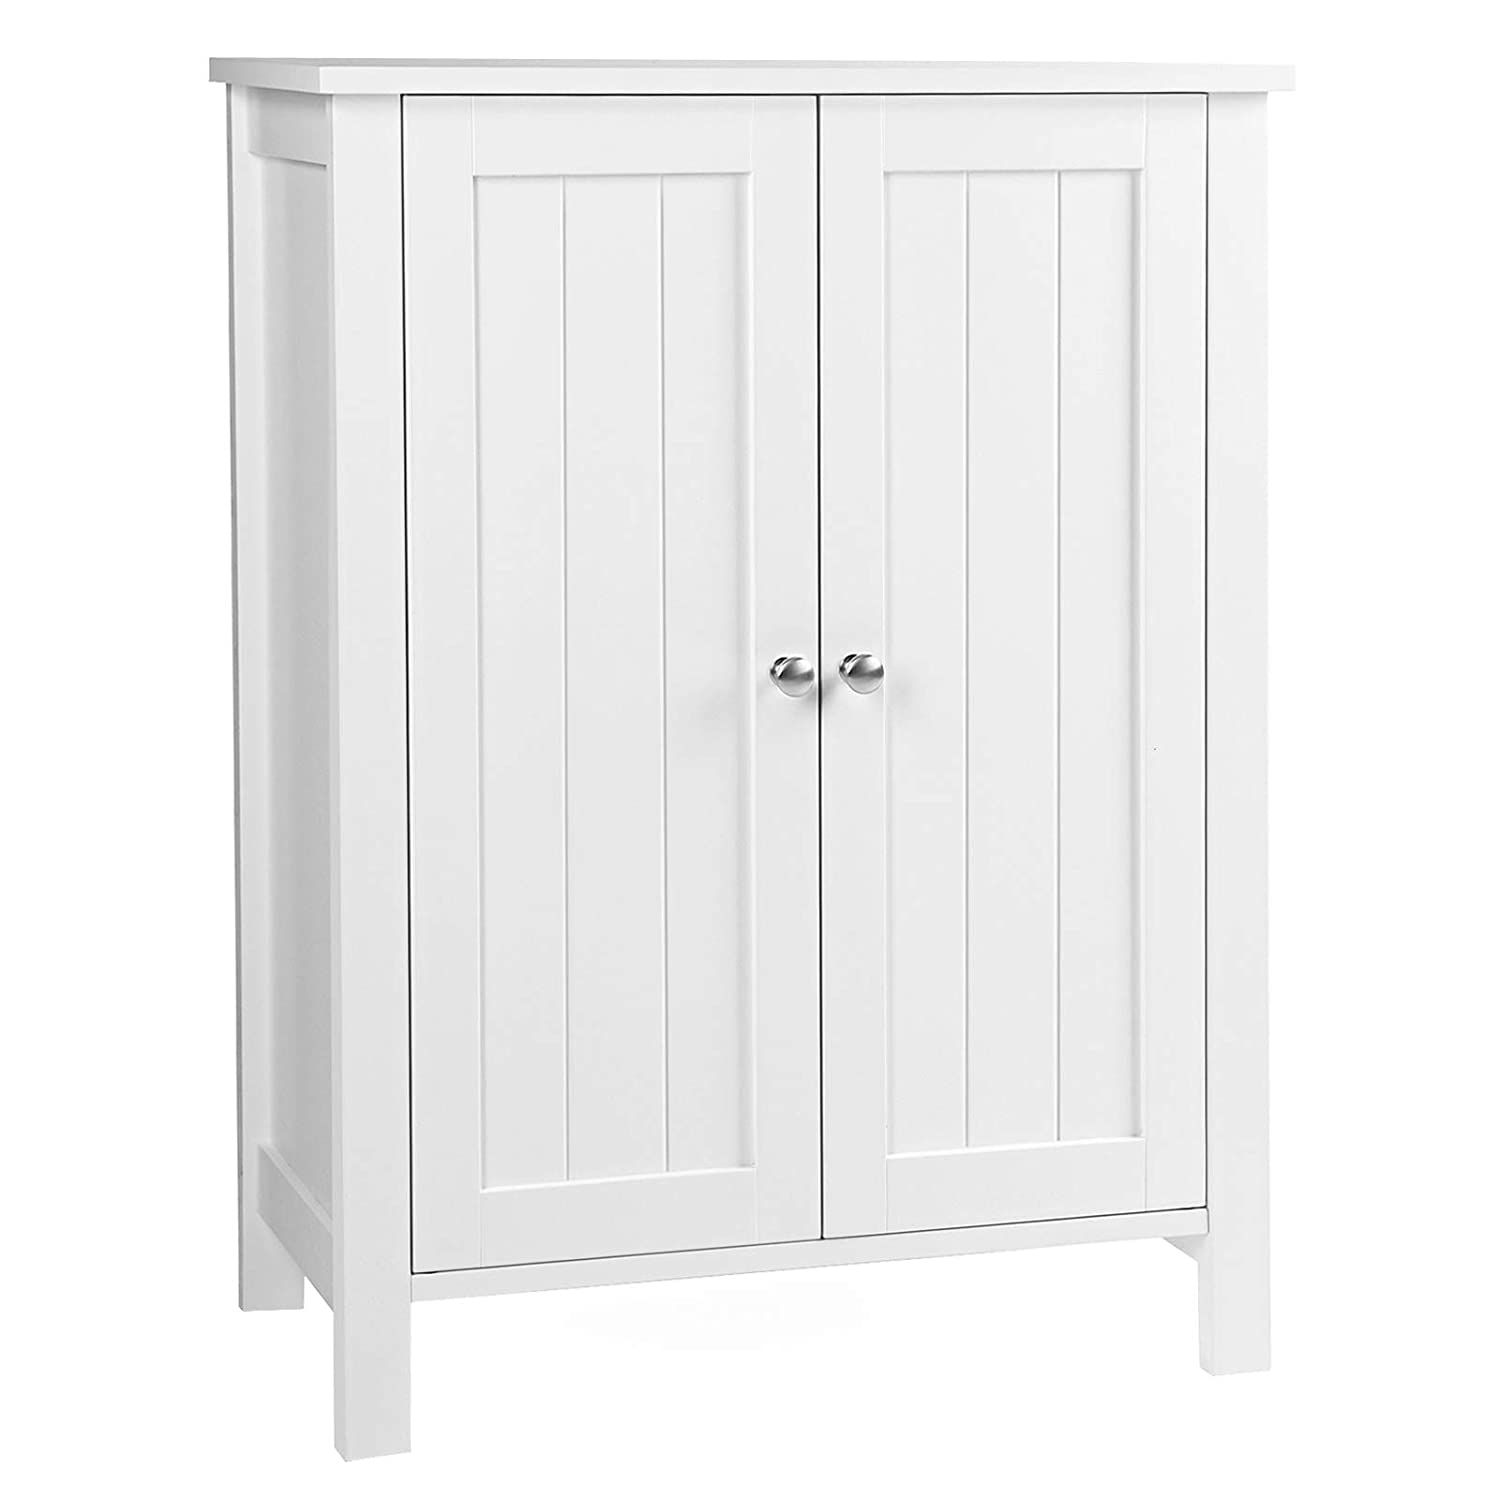 "VASAGLE UBCB60W Bathroom Floor Storage Cabinet with Double Door Adjustable Shelf, 23.6""L x 11.8""W x 31.5""H White"